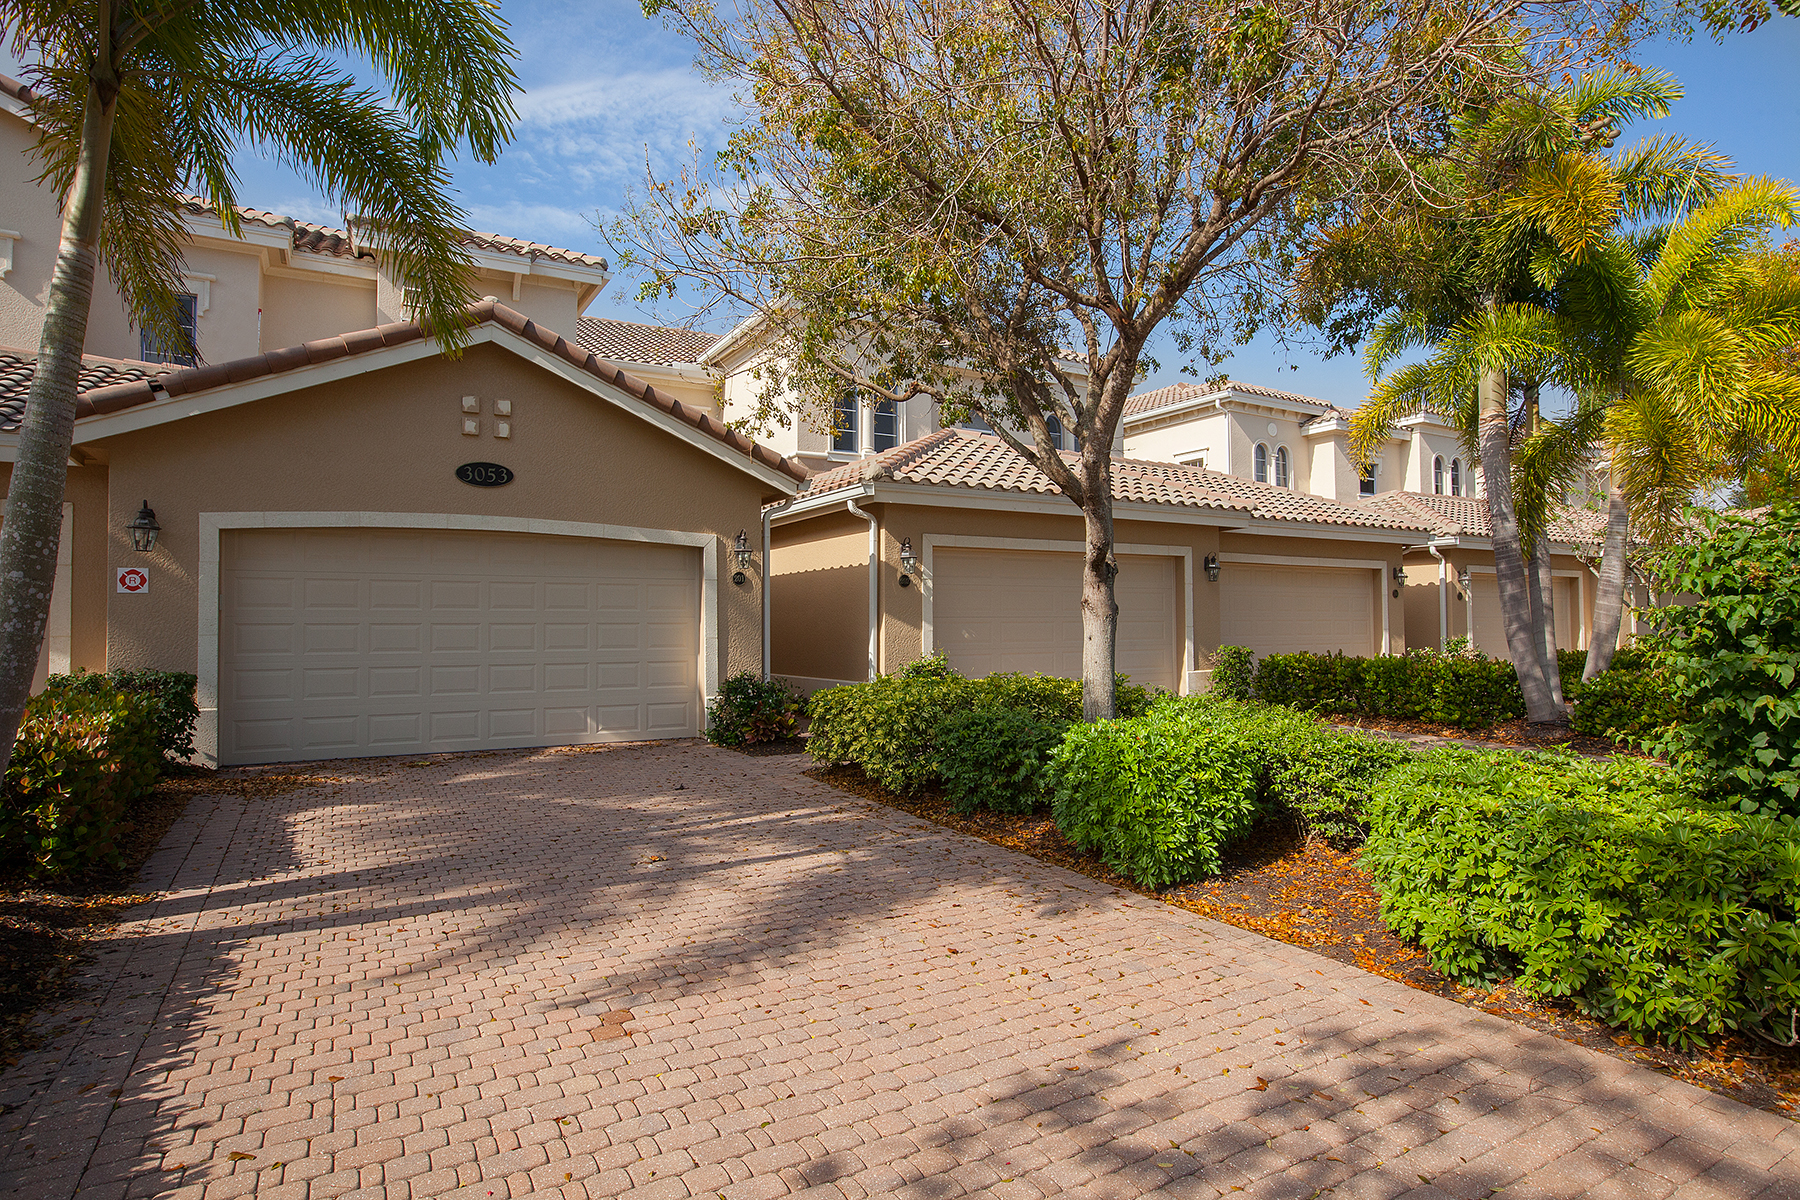 Condominium for Sale at FIDDLER'S CREEK - MARENGO 3053 Aviamar Cir 201 Naples, Florida, 34114 United States